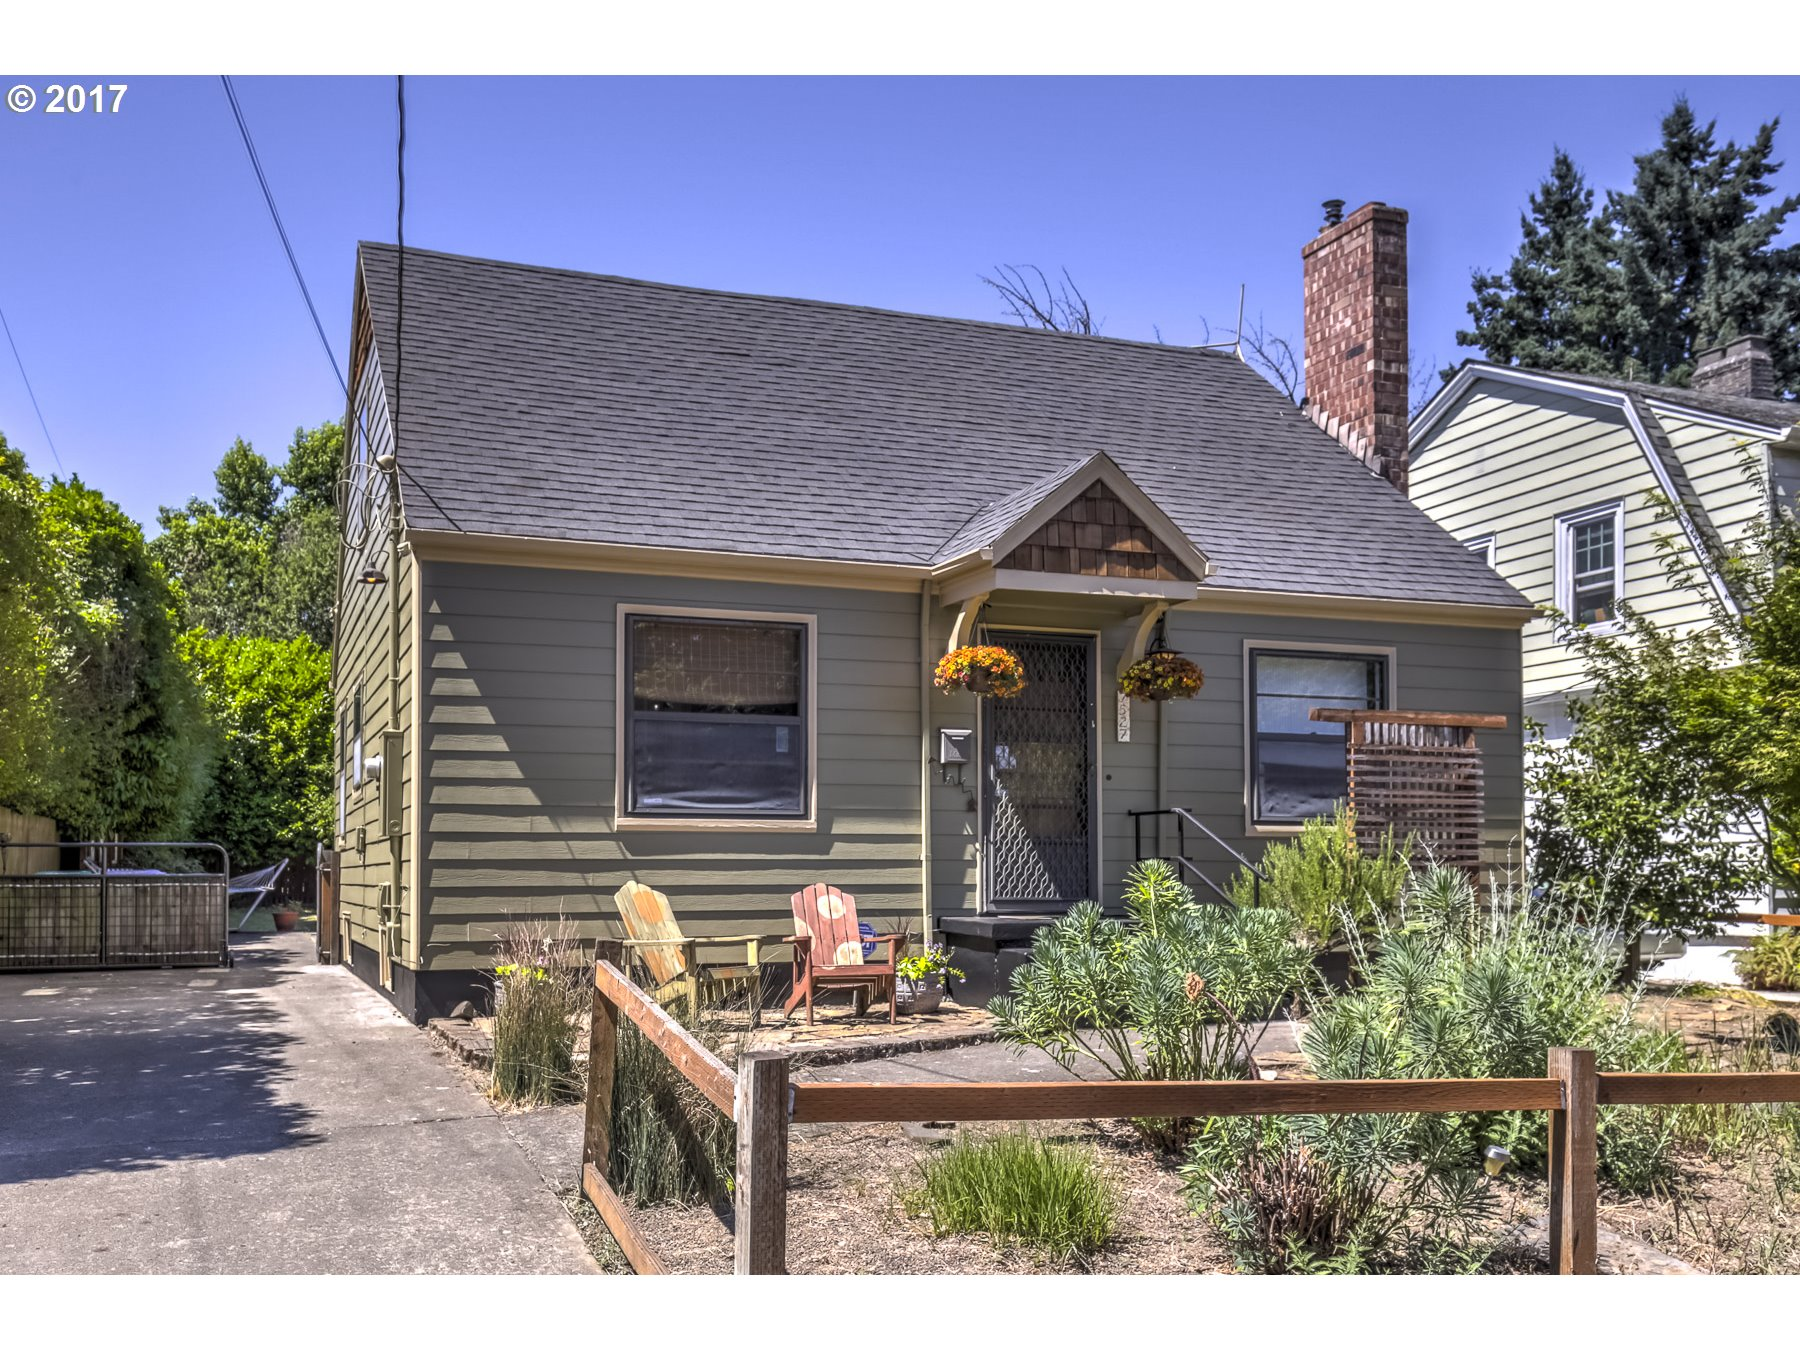 Sweet Kenton Cape Cod across from Mocks Crest. Newly refinished hardwood/fir floors, new exterior paint, hardiplank siding.  Central A/C, updated 200amp panel. Large upper master w/bonus room & landing area.  Finished non-egressed basement rooms. Huge oversized private fenced yard with deck and outdoor storage. A block to Columbia Park, near the bluff.